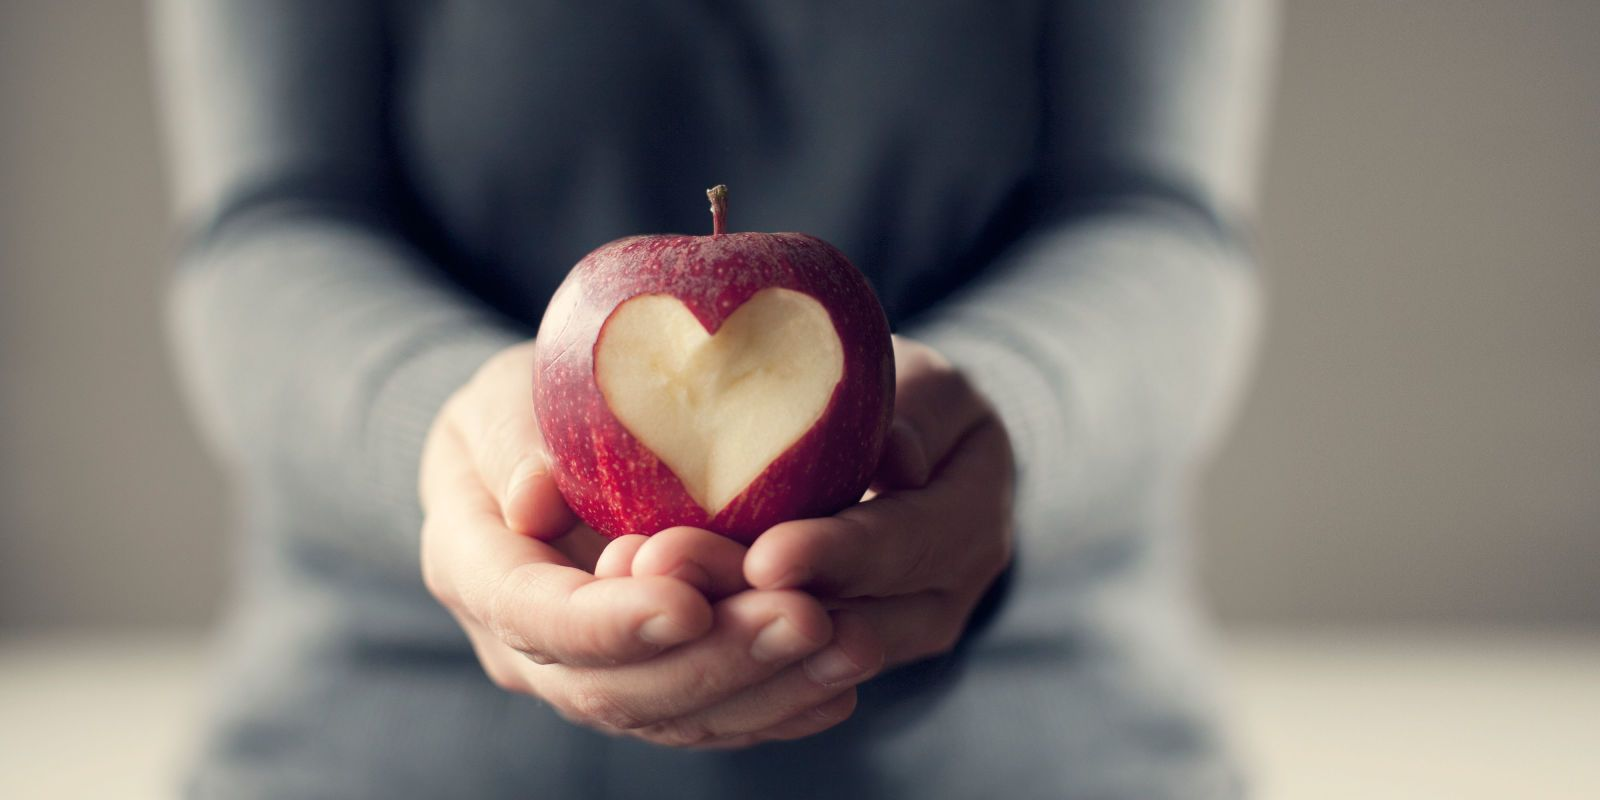 The hearthealthy nutrients you need to include in your